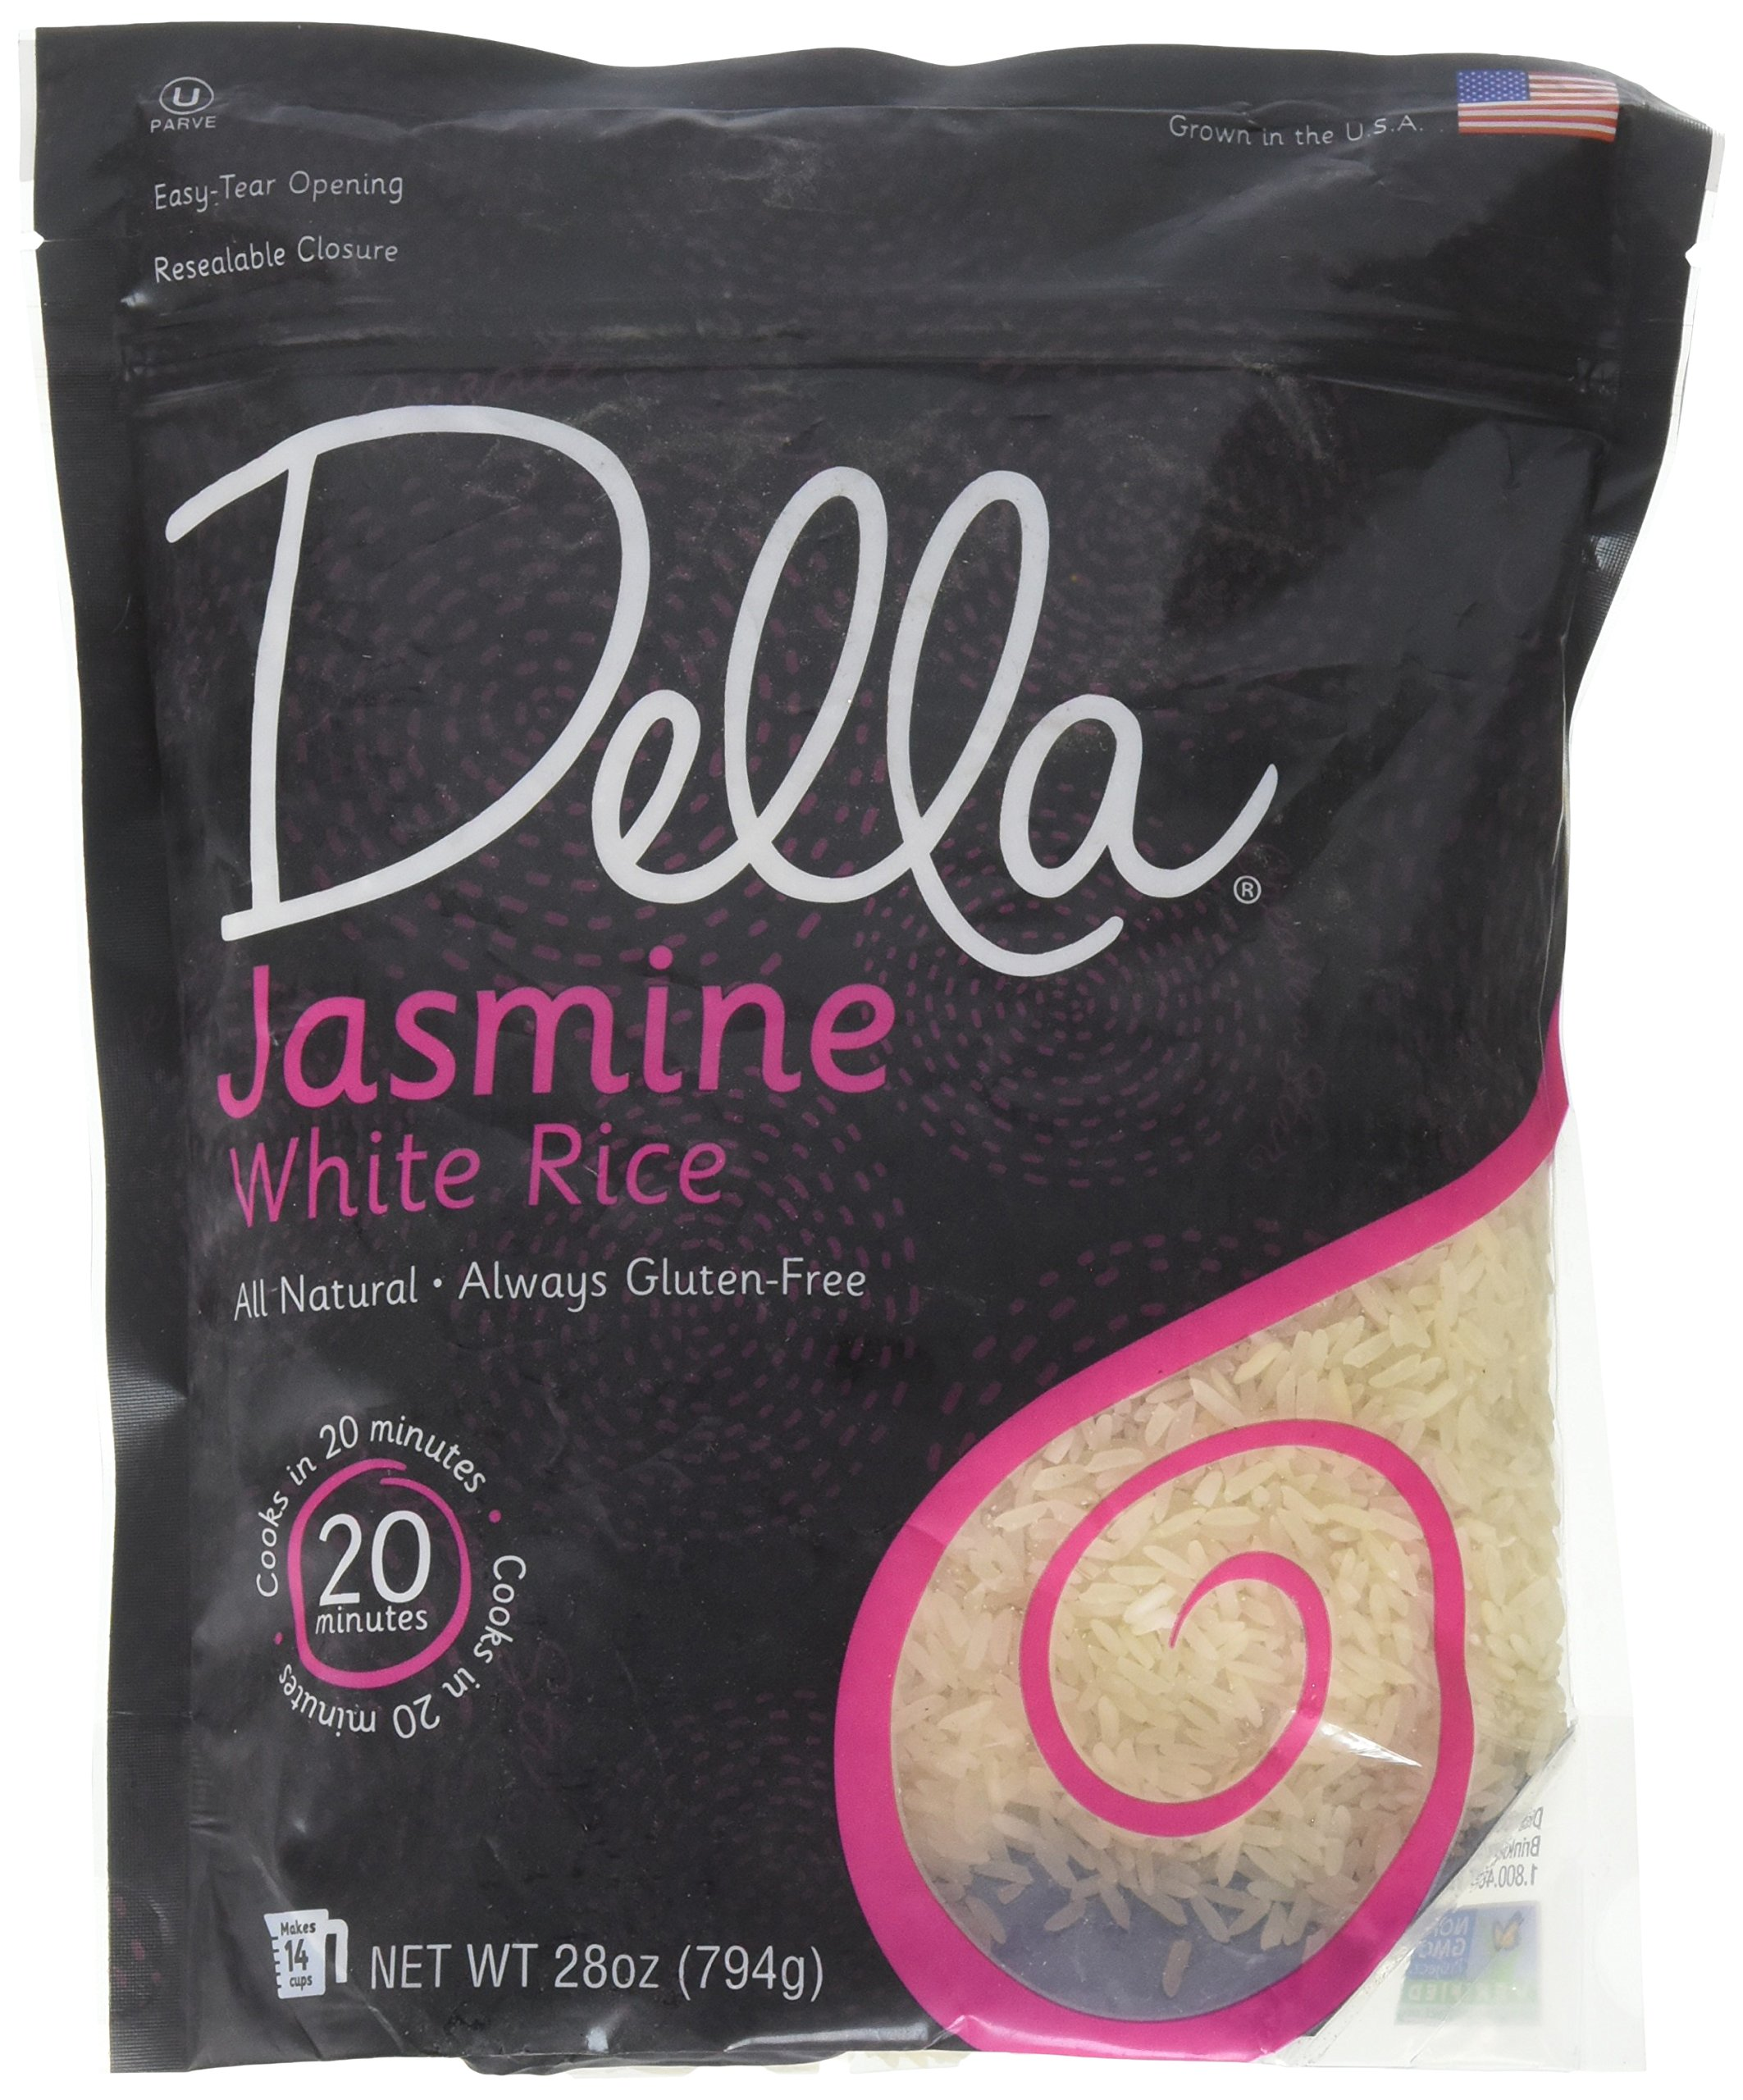 Della Gourmet Jasmine White Rice - All-Natural, Fat & GMO Free (28 oz) by DELLA